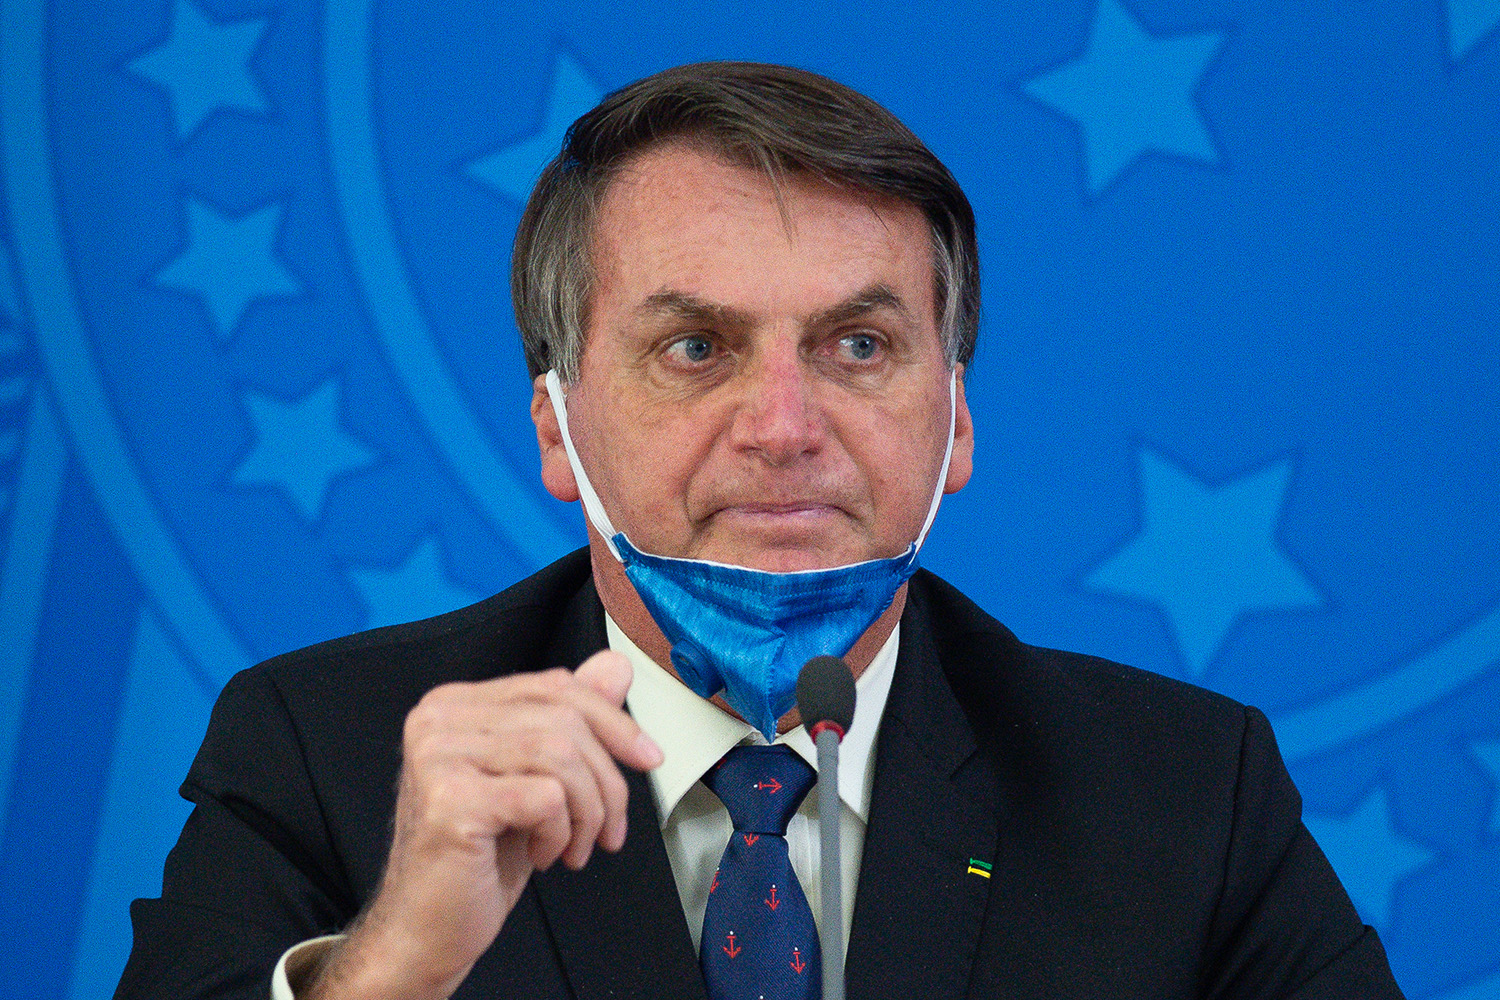 Brazilian President Jair Bolsonaro takes off his protective mask to speak to journalists during a news conference about the coronavirus outbreak at the Planalto Palace in Brasilia on March 20.